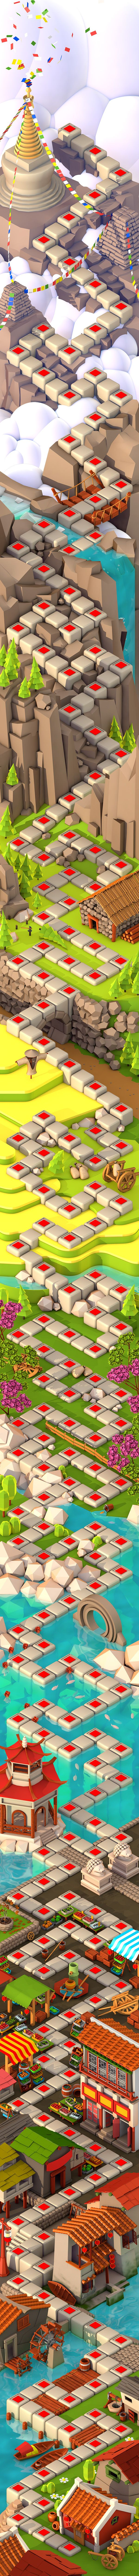 Matchunk on Behance, map, game map, levels, world, game world, map screen, game design, level design, isometric, tiles, 3d